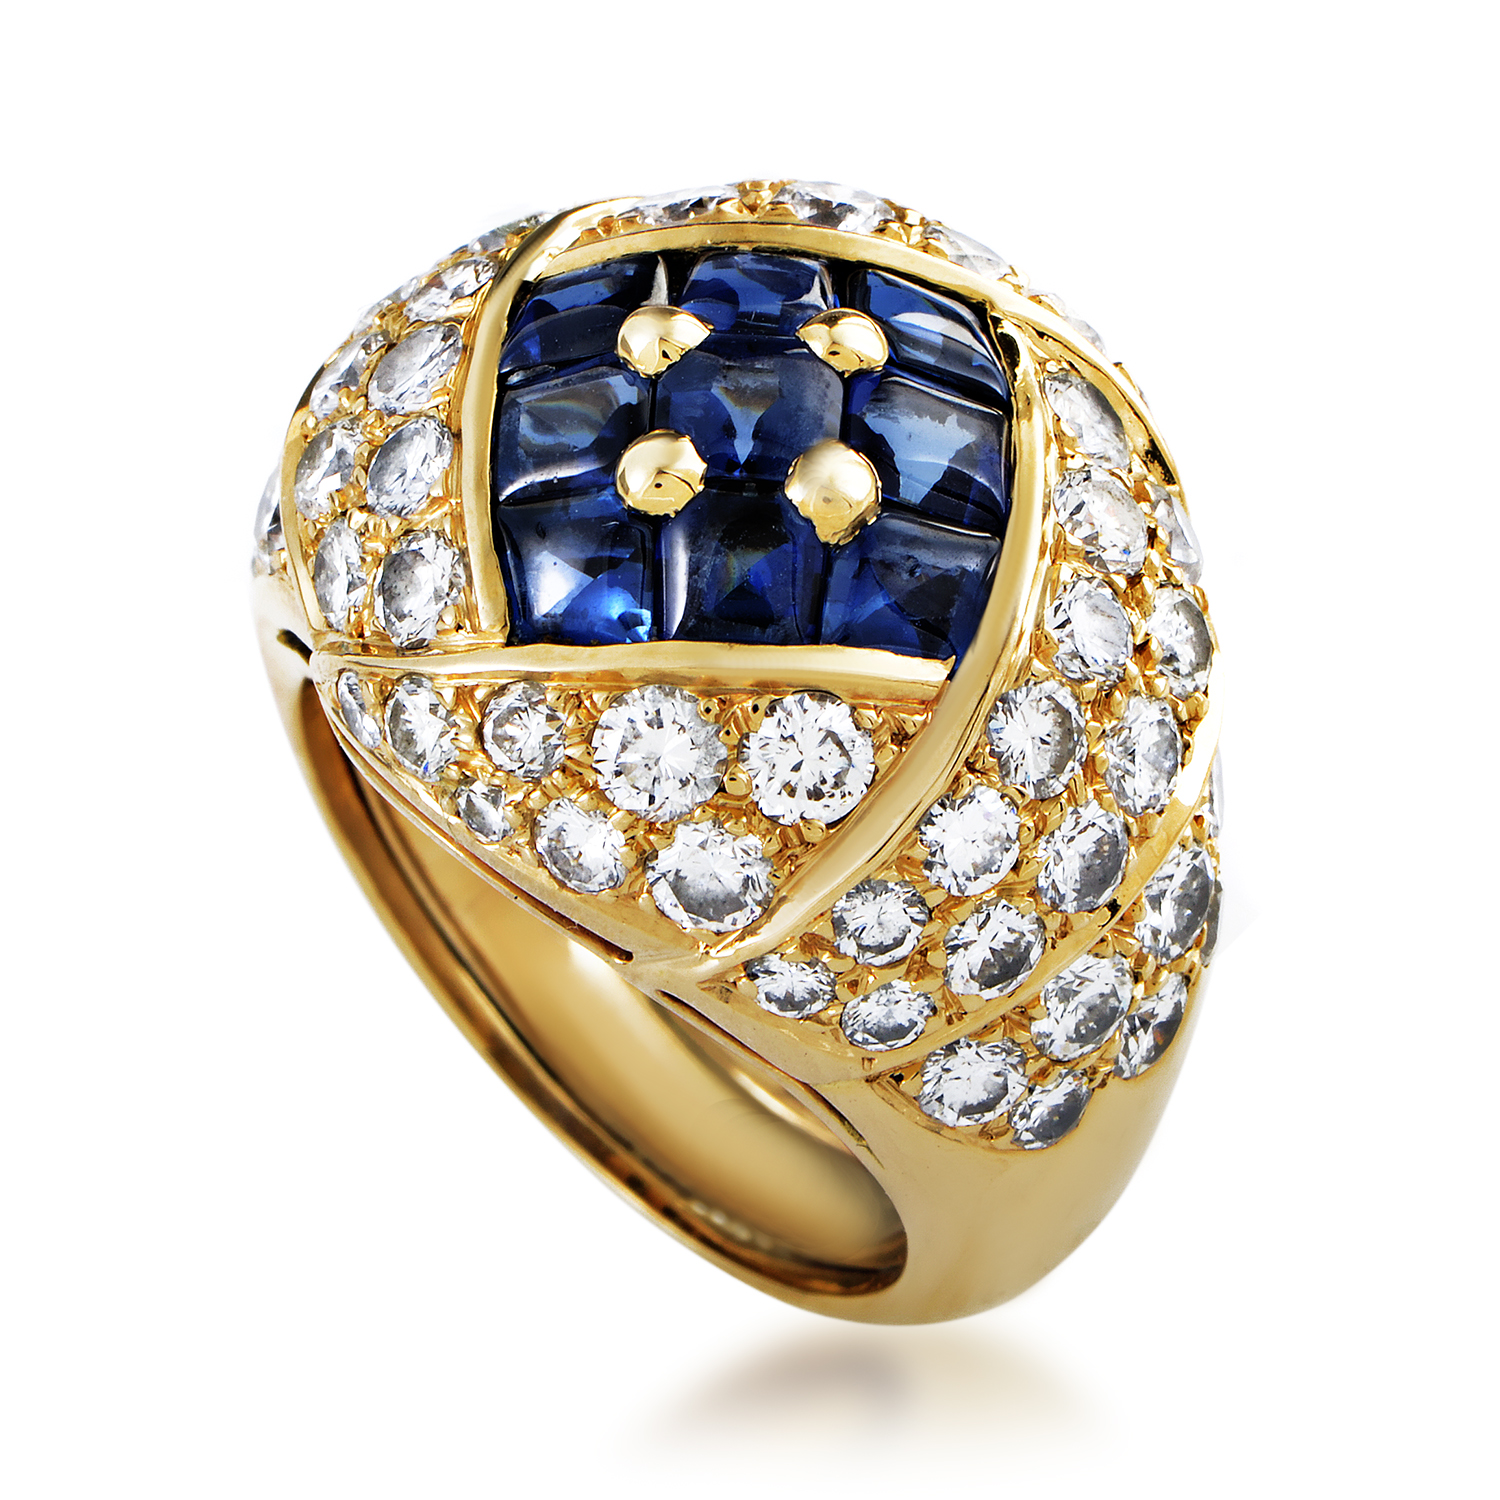 Piaget Women's 18K Yellow Gold Diamond & Sapphire Ring